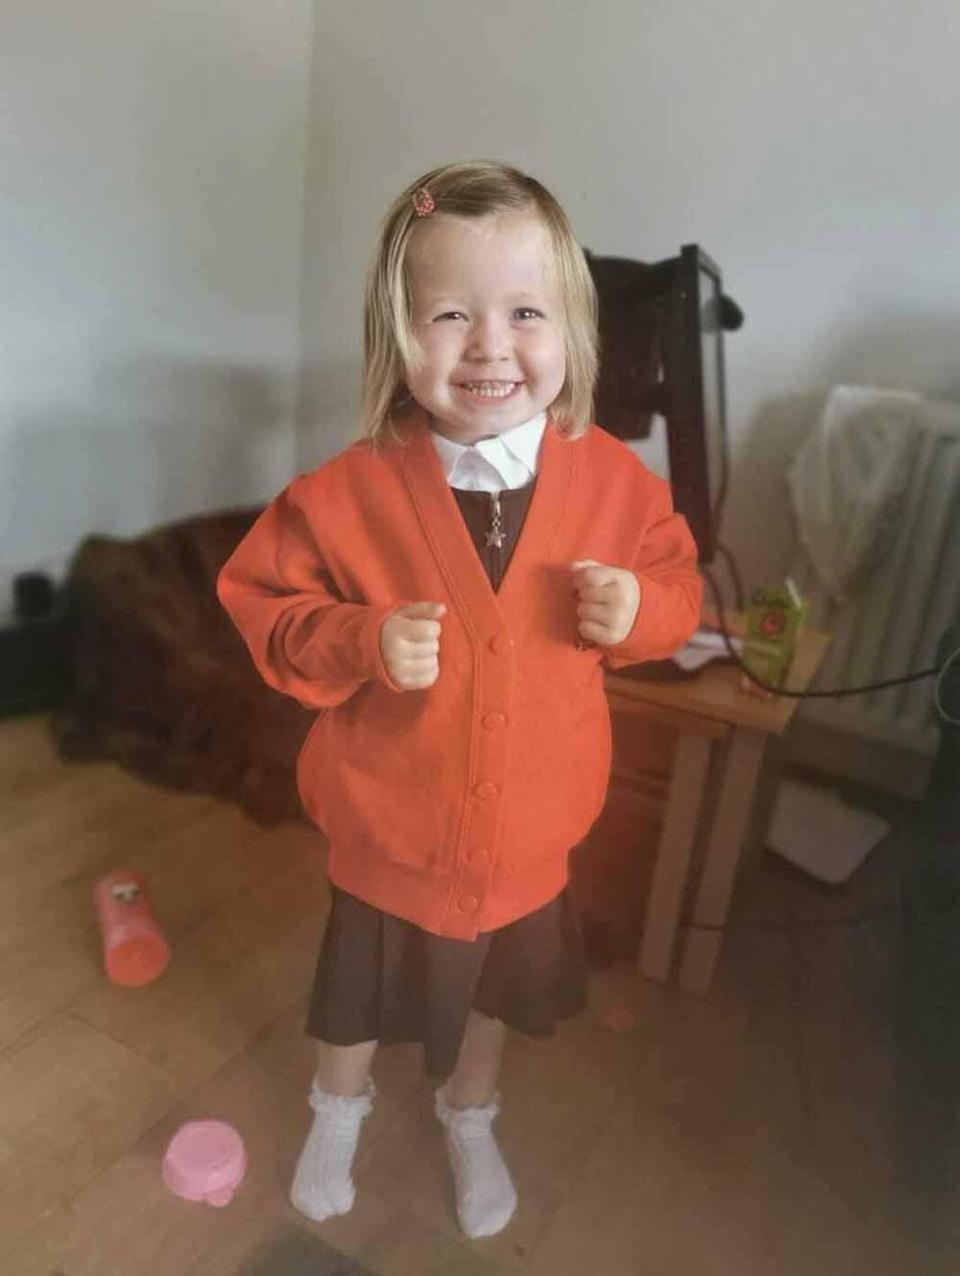 Evie excited to attend nursery. PA REAL LIFE COLLECT